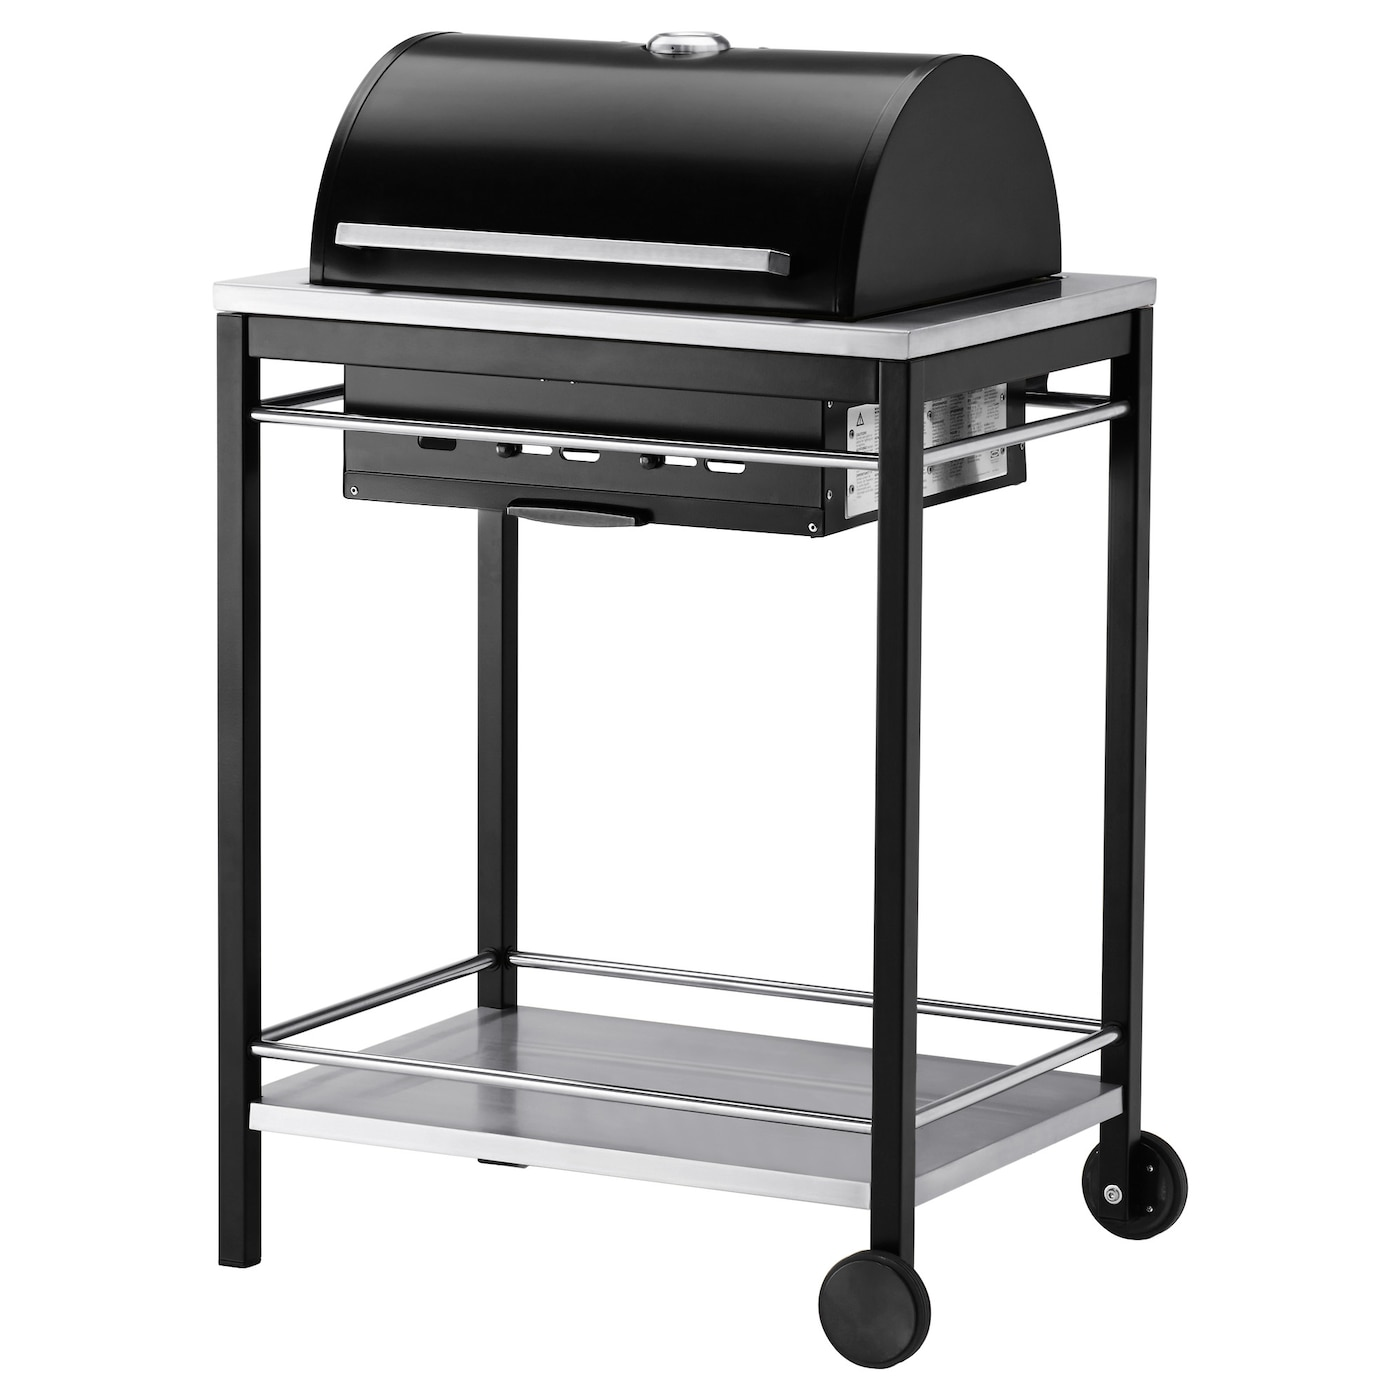 ikea klasen charcoal barbecue handles in stainless steel - Stainless Steel Charcoal Grill